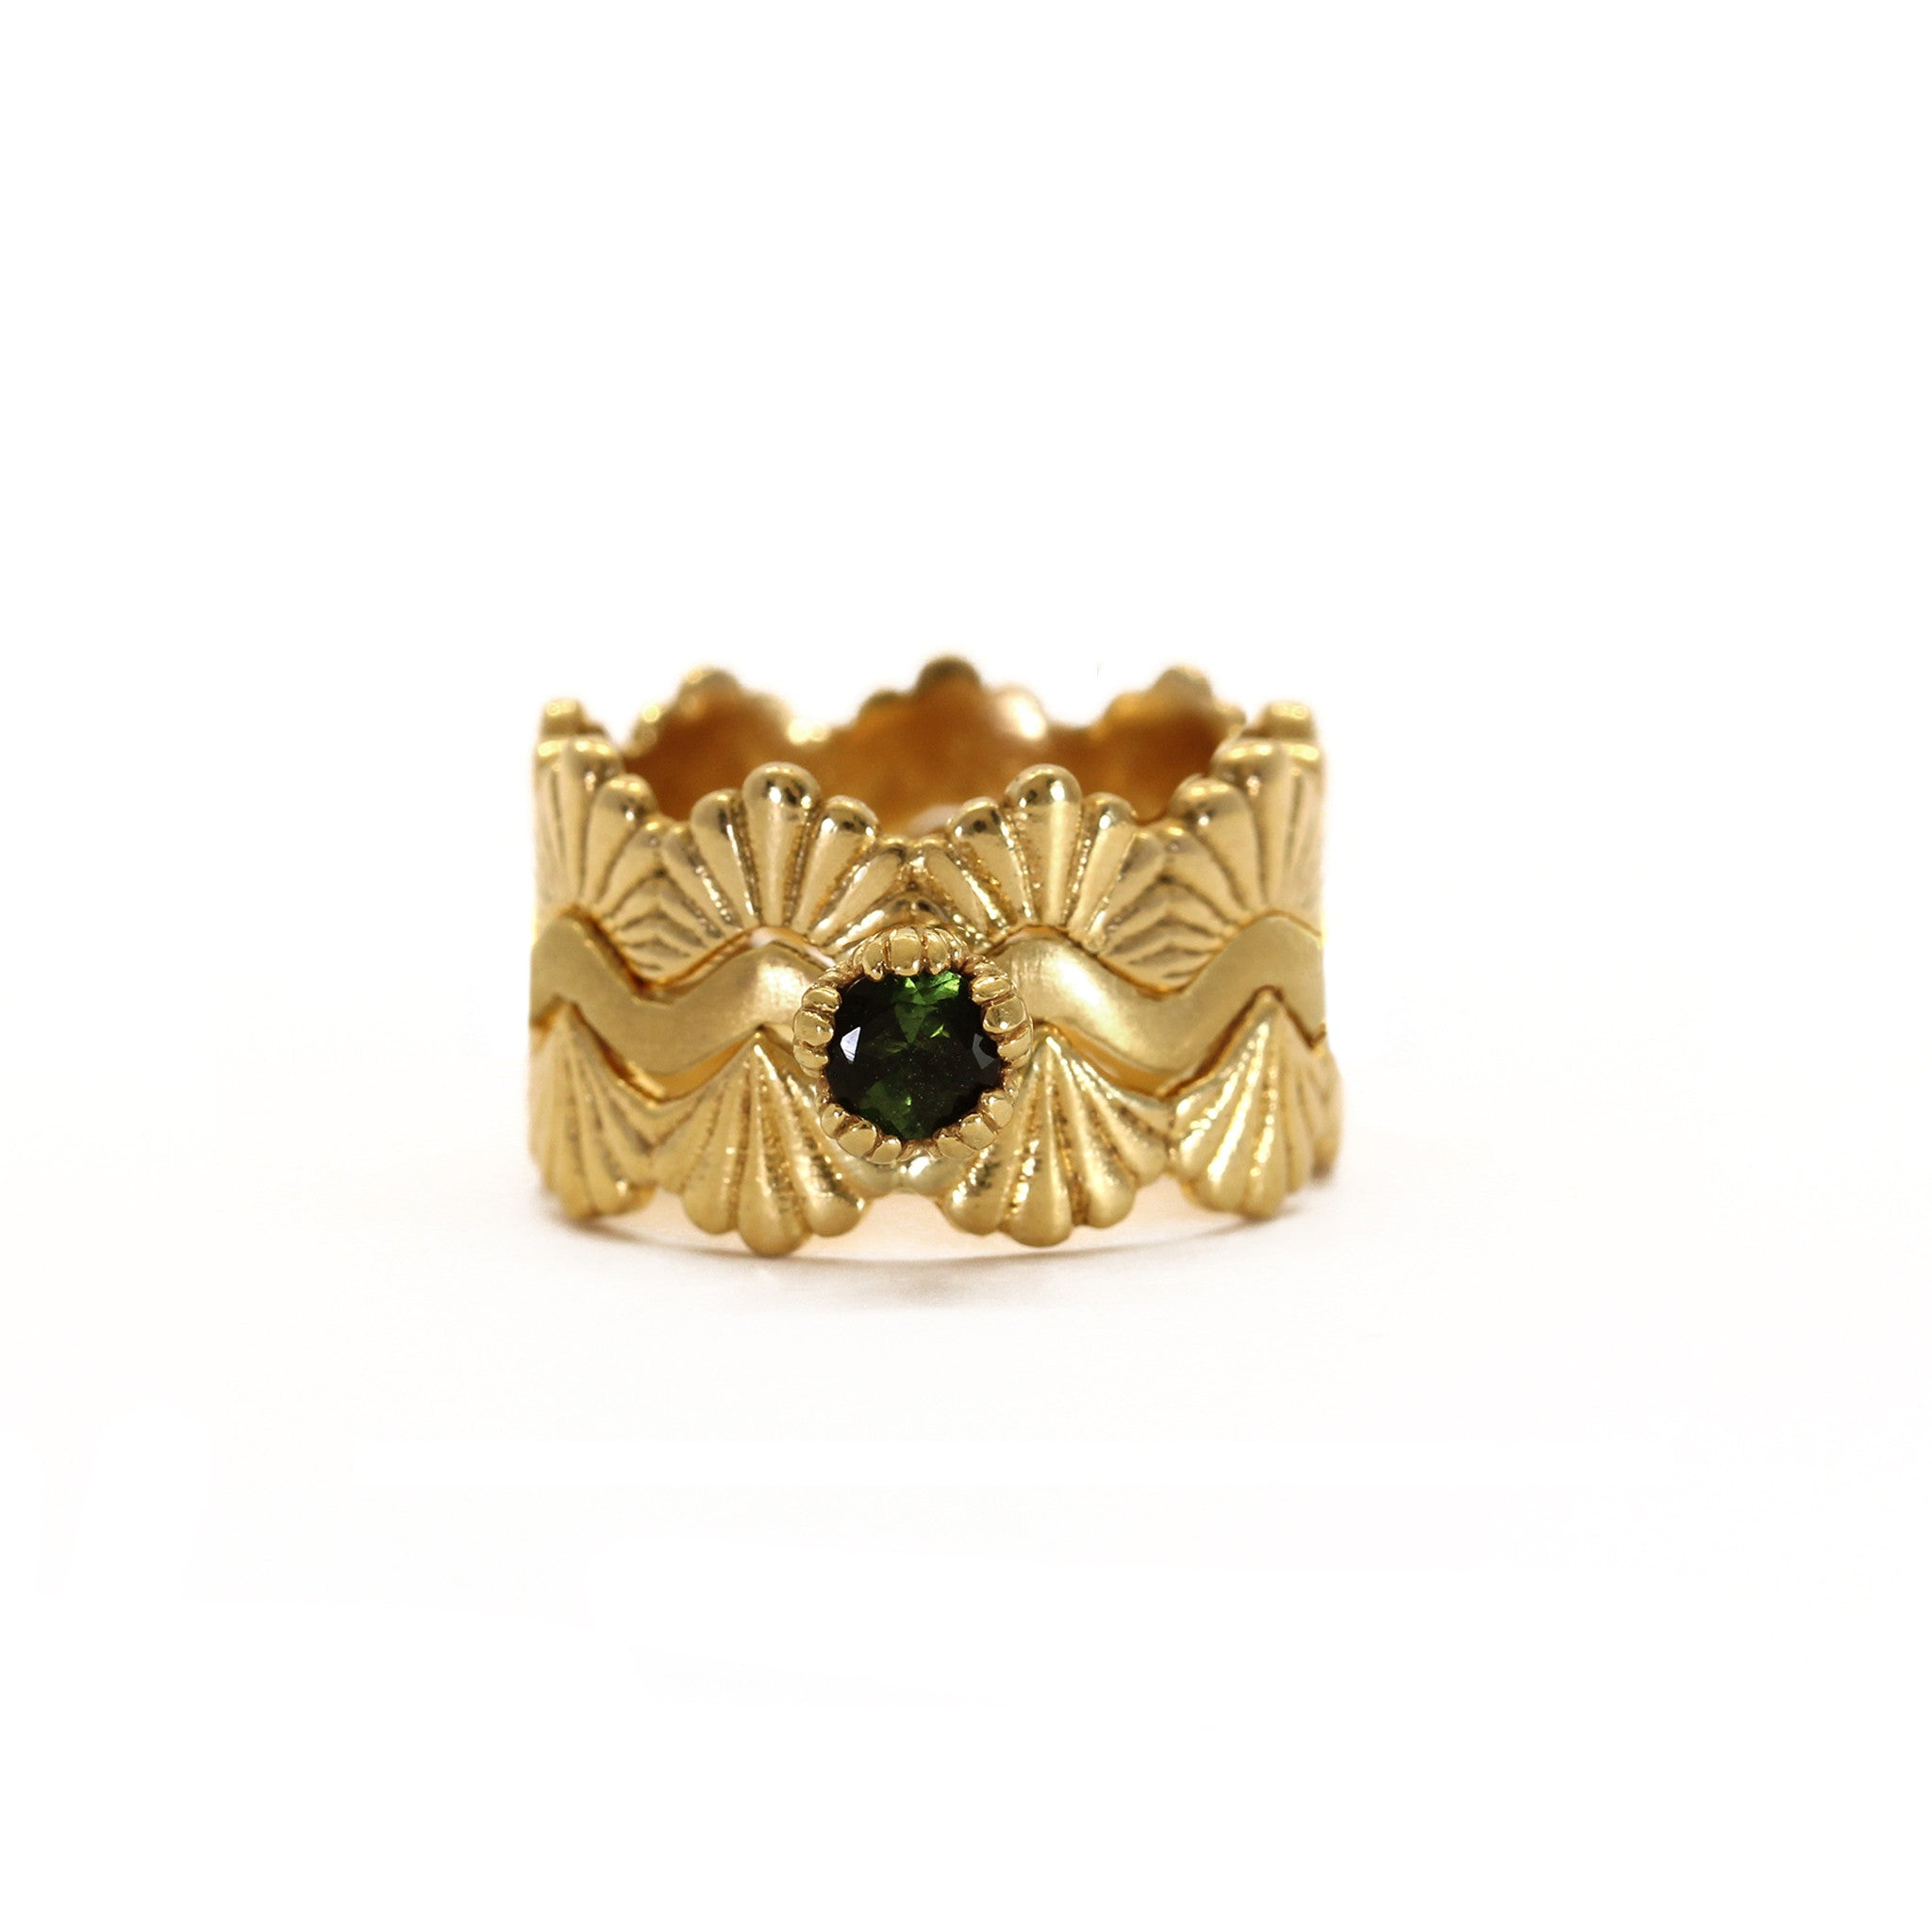 Loggia Yellow Gold Ring